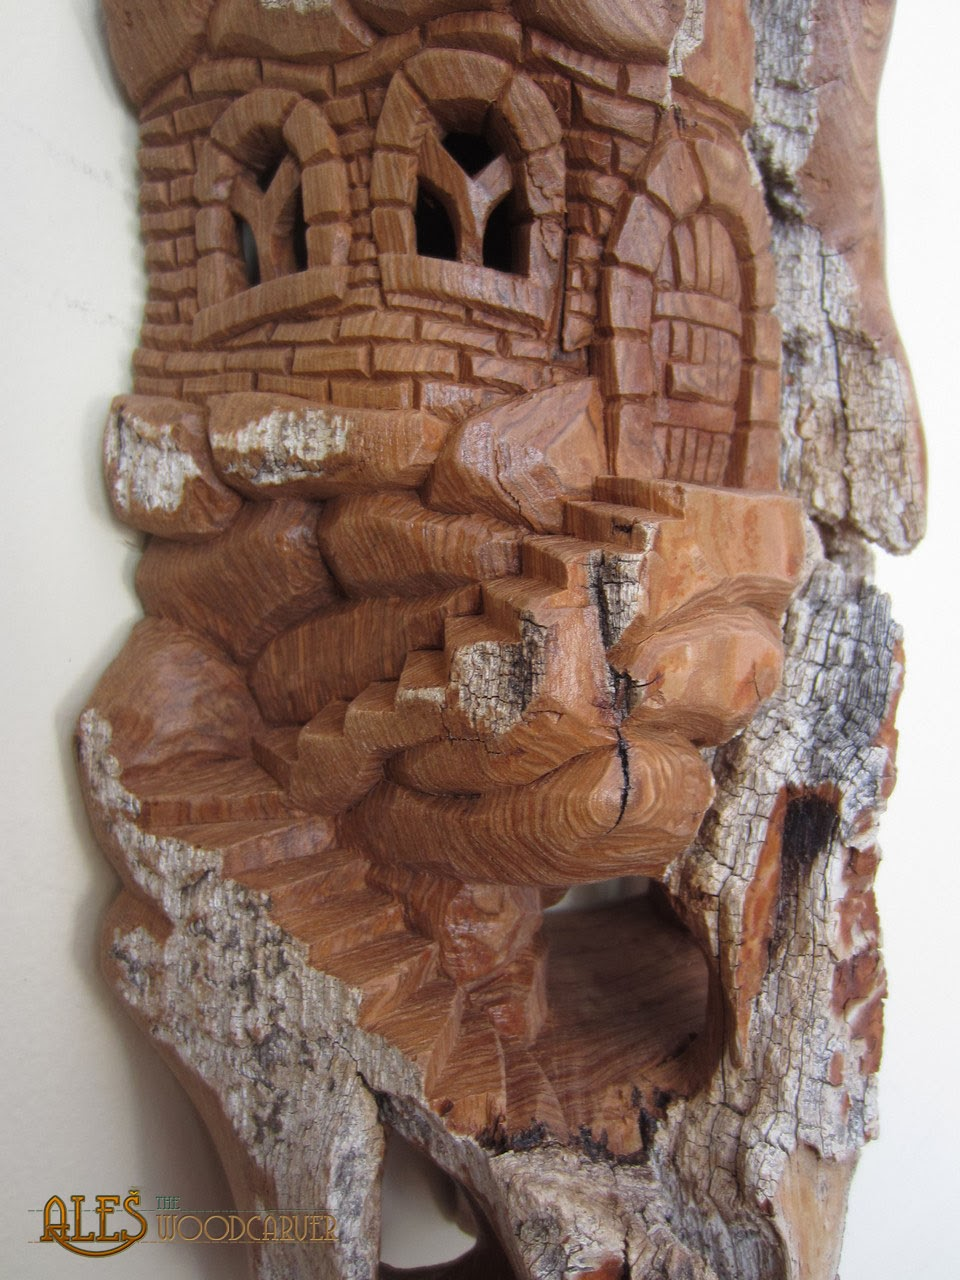 Ales the woodcarver unyielding castle